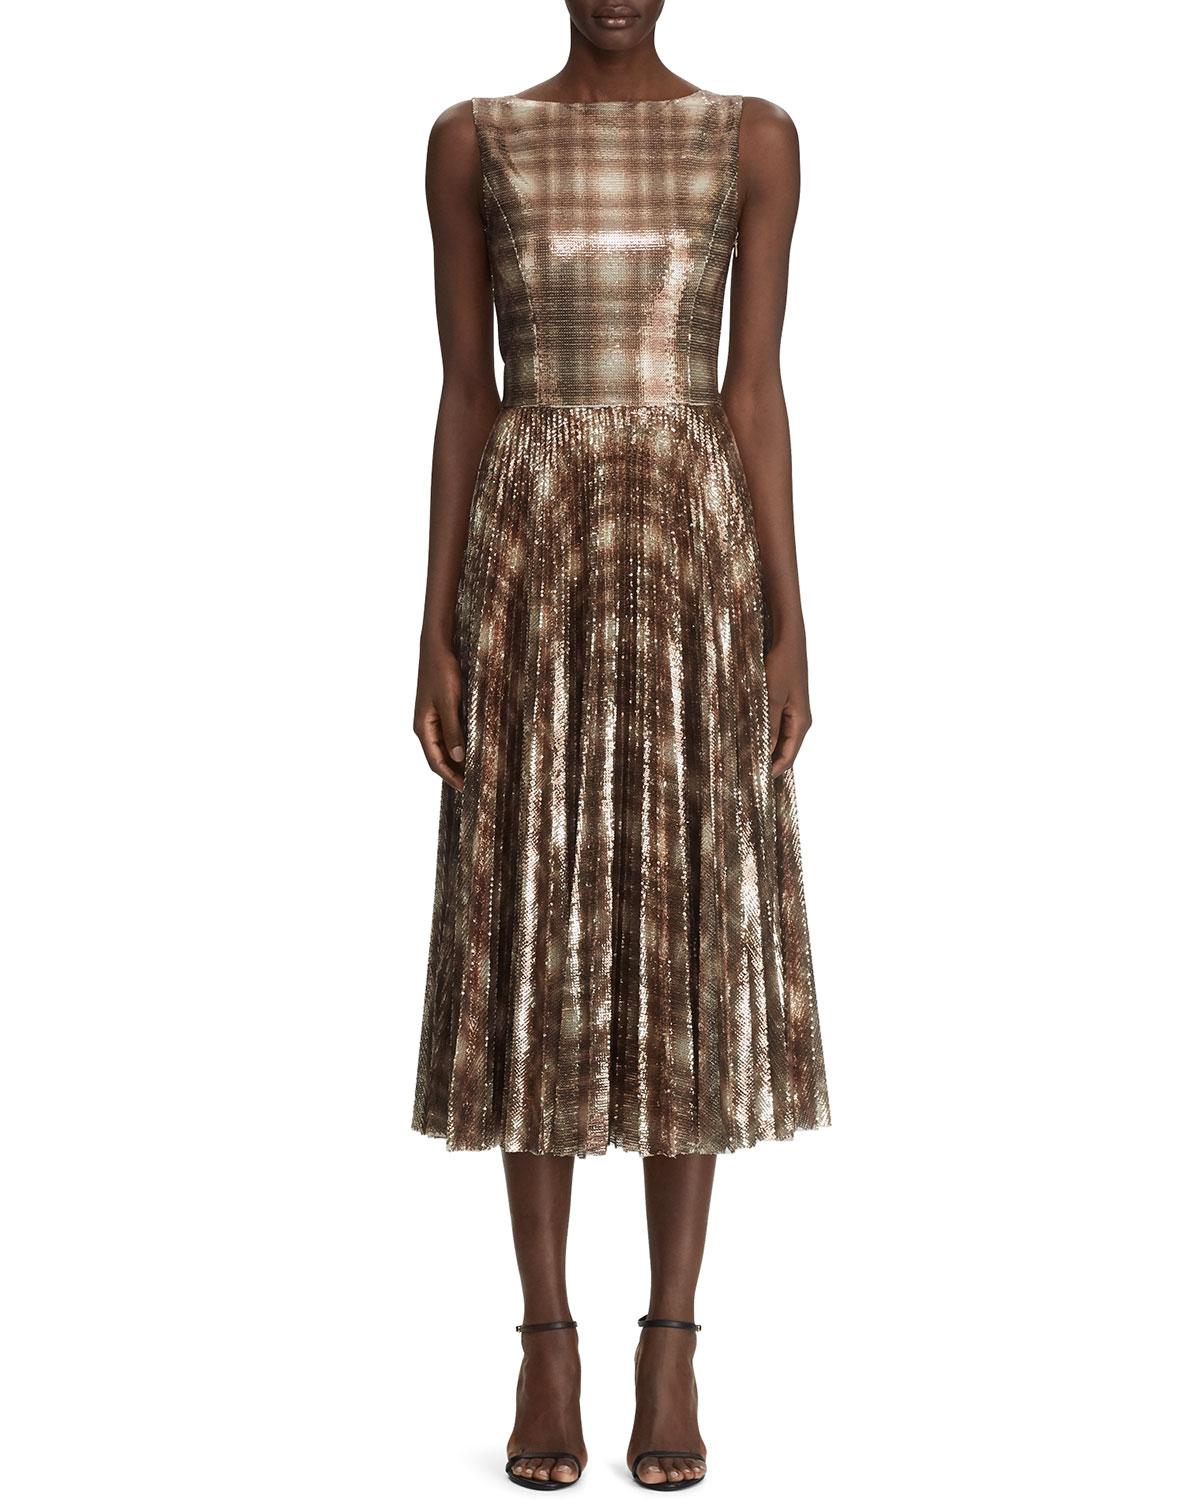 Ralph Lauren Dresses ARWEN EMBELLISHED PLAID DRESS